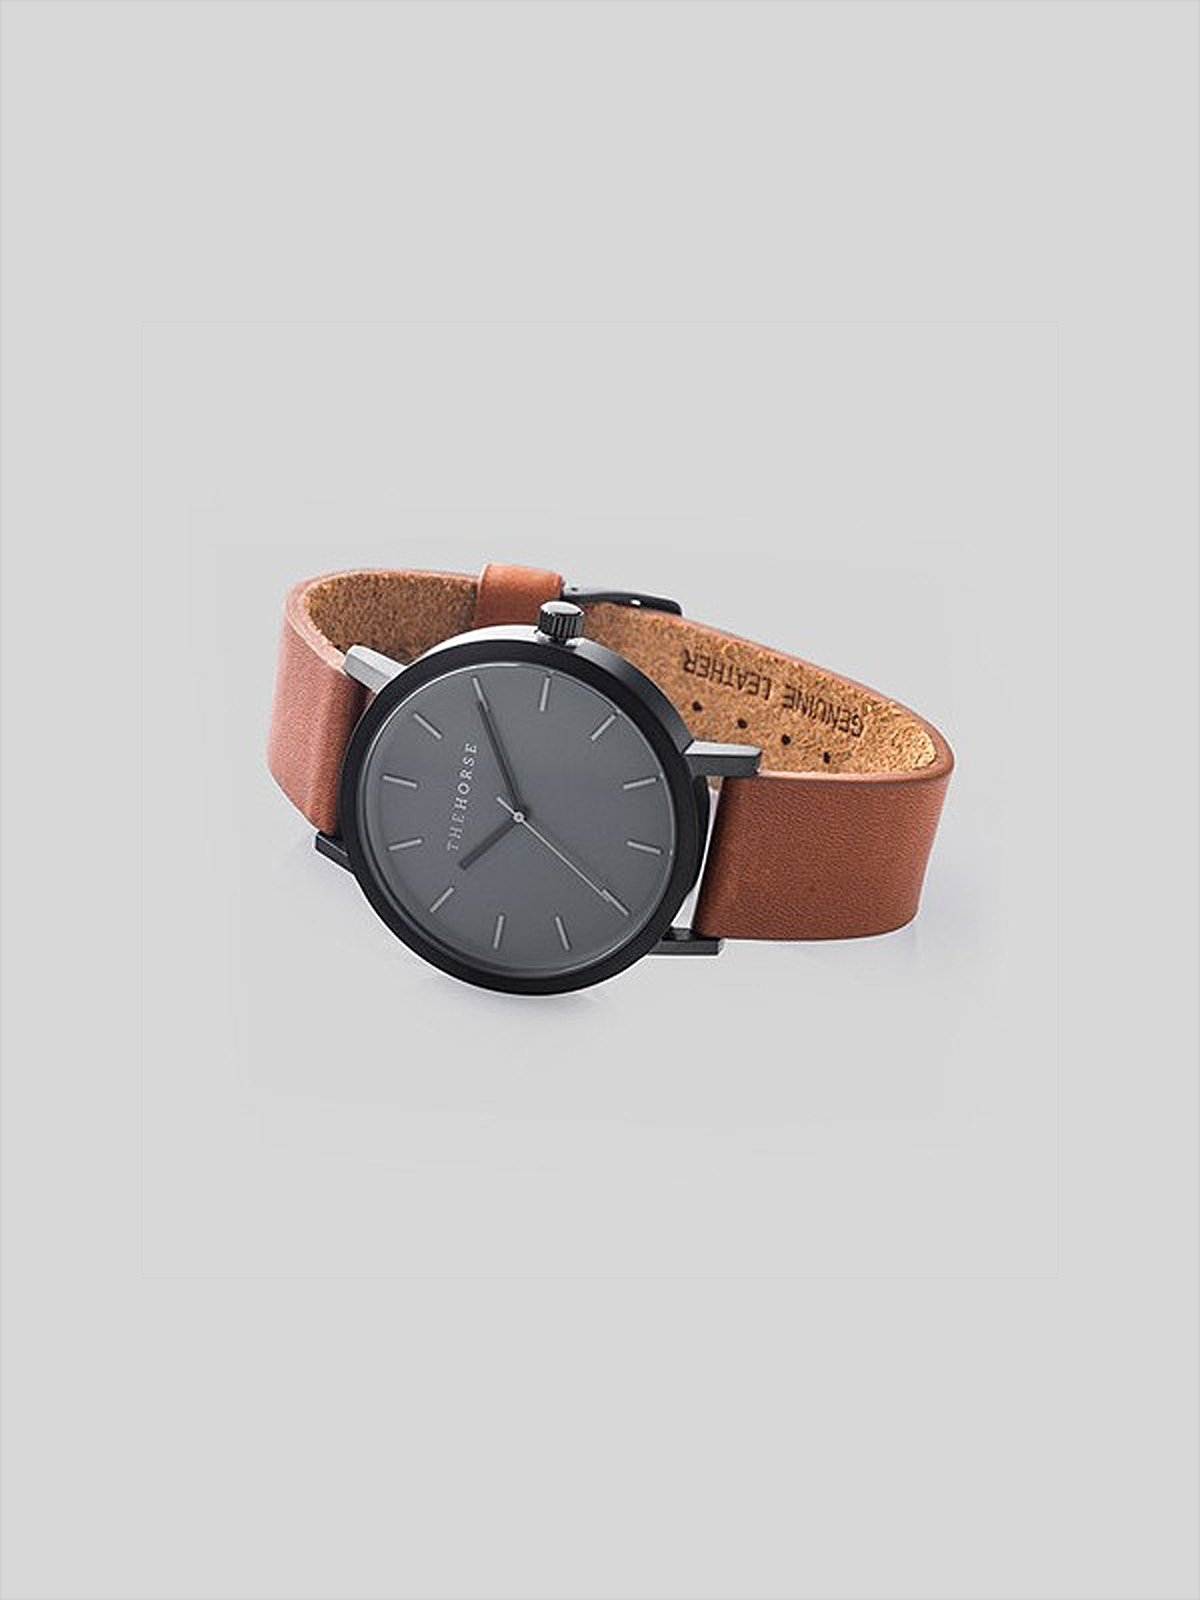 The Horse The Horse Matte Black / Tan Leather Watch